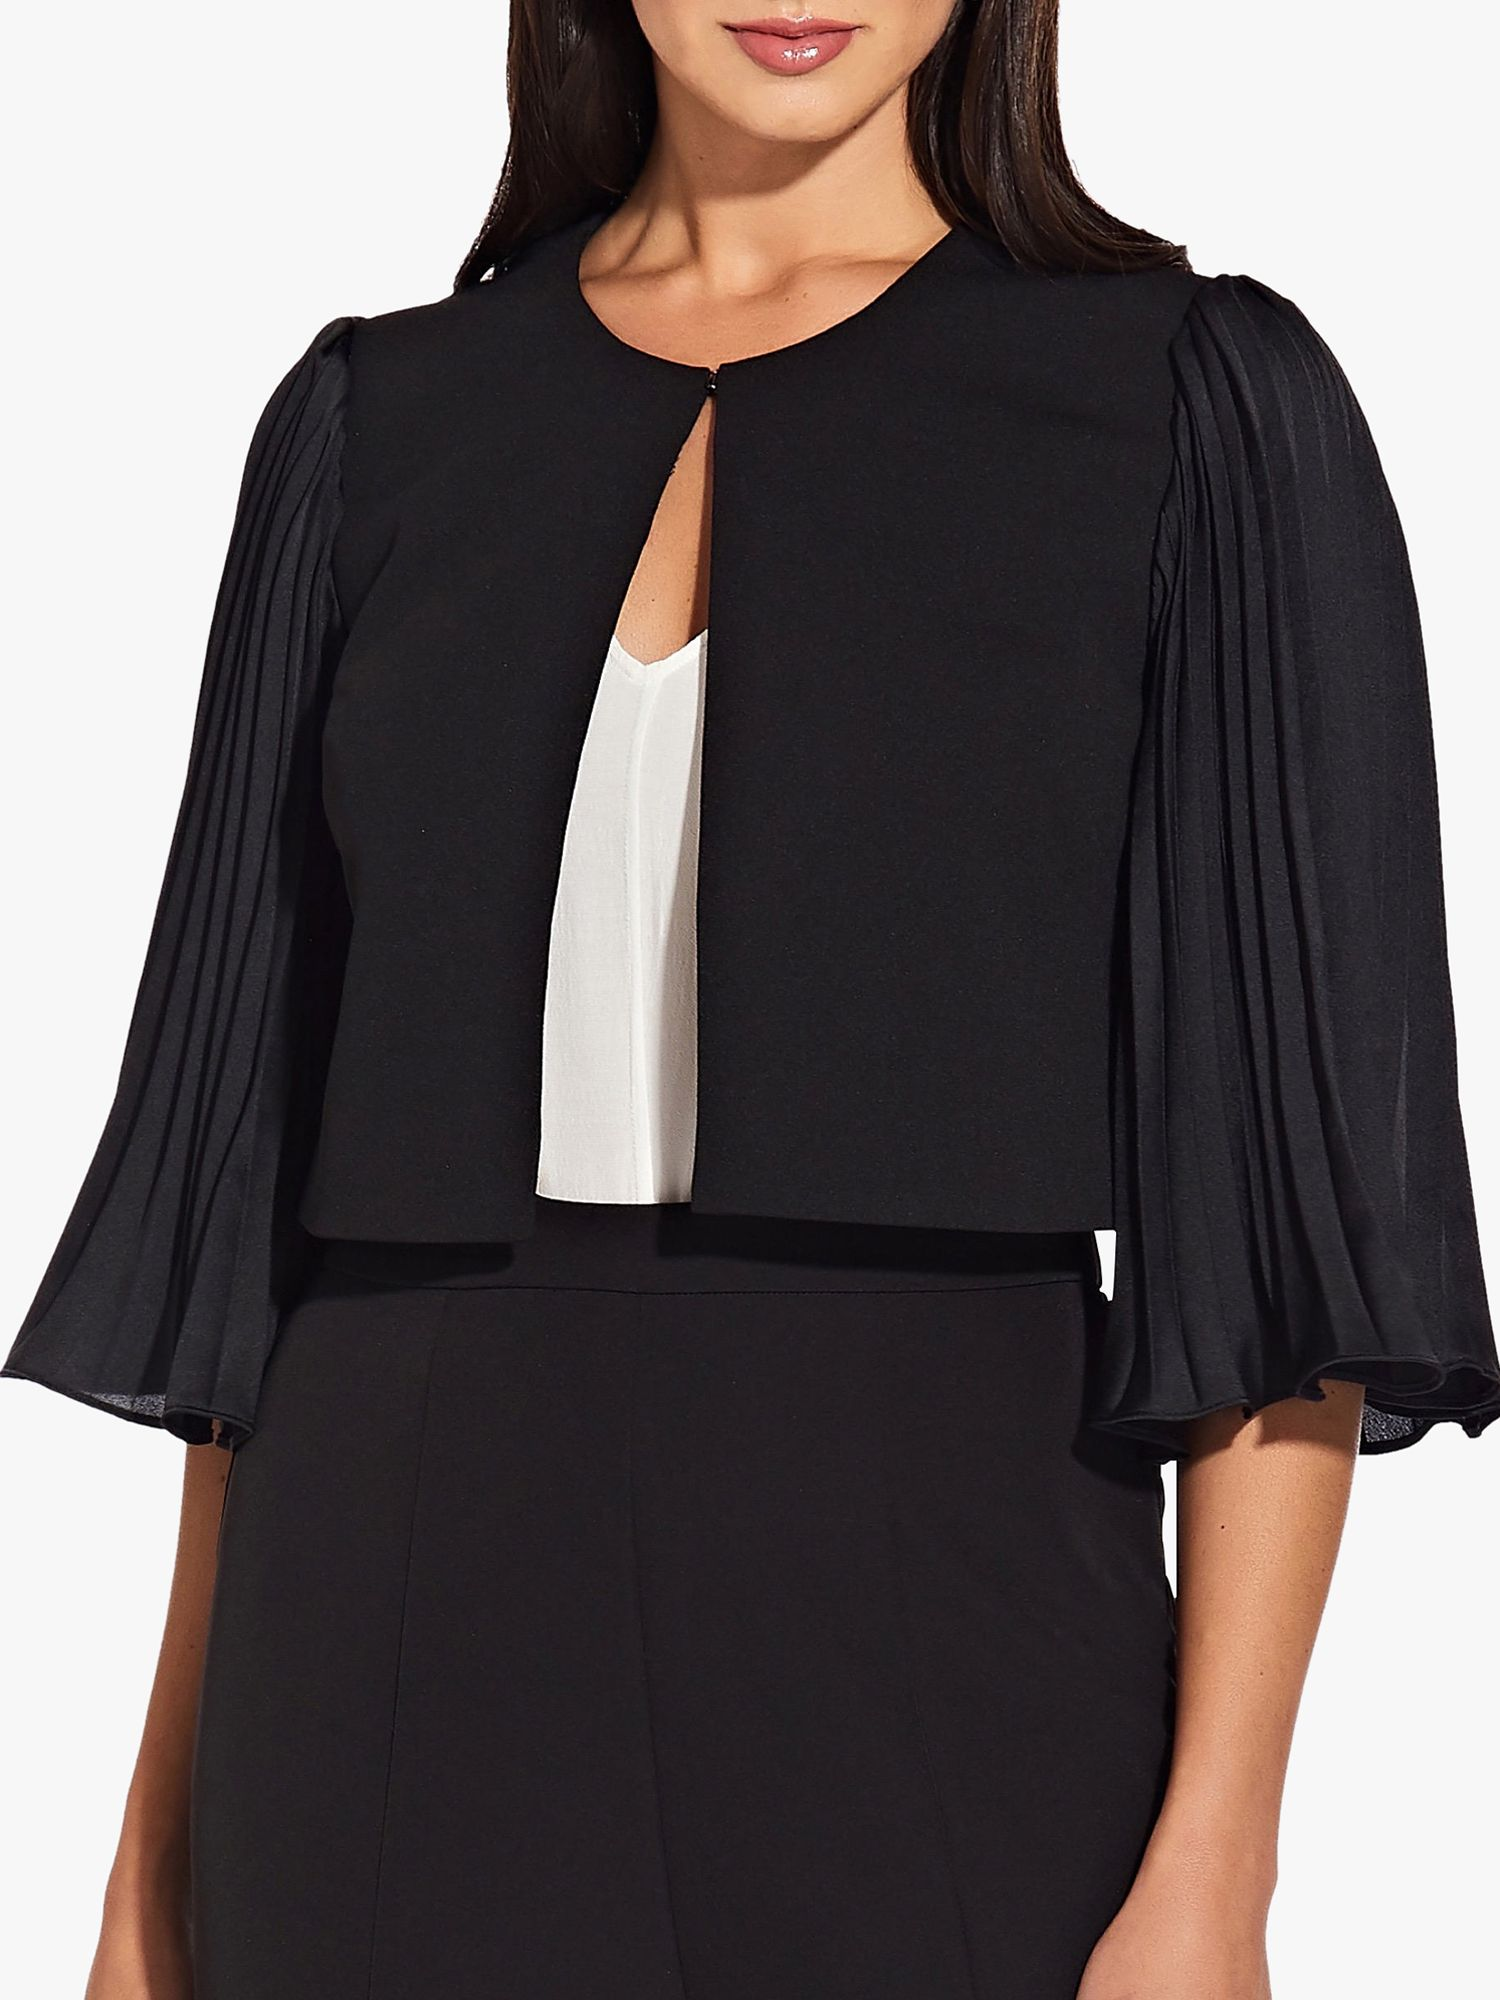 Adrianna Papell Adrianna Papell Pleated Sleeve Cropped Tailored Jacket, Black